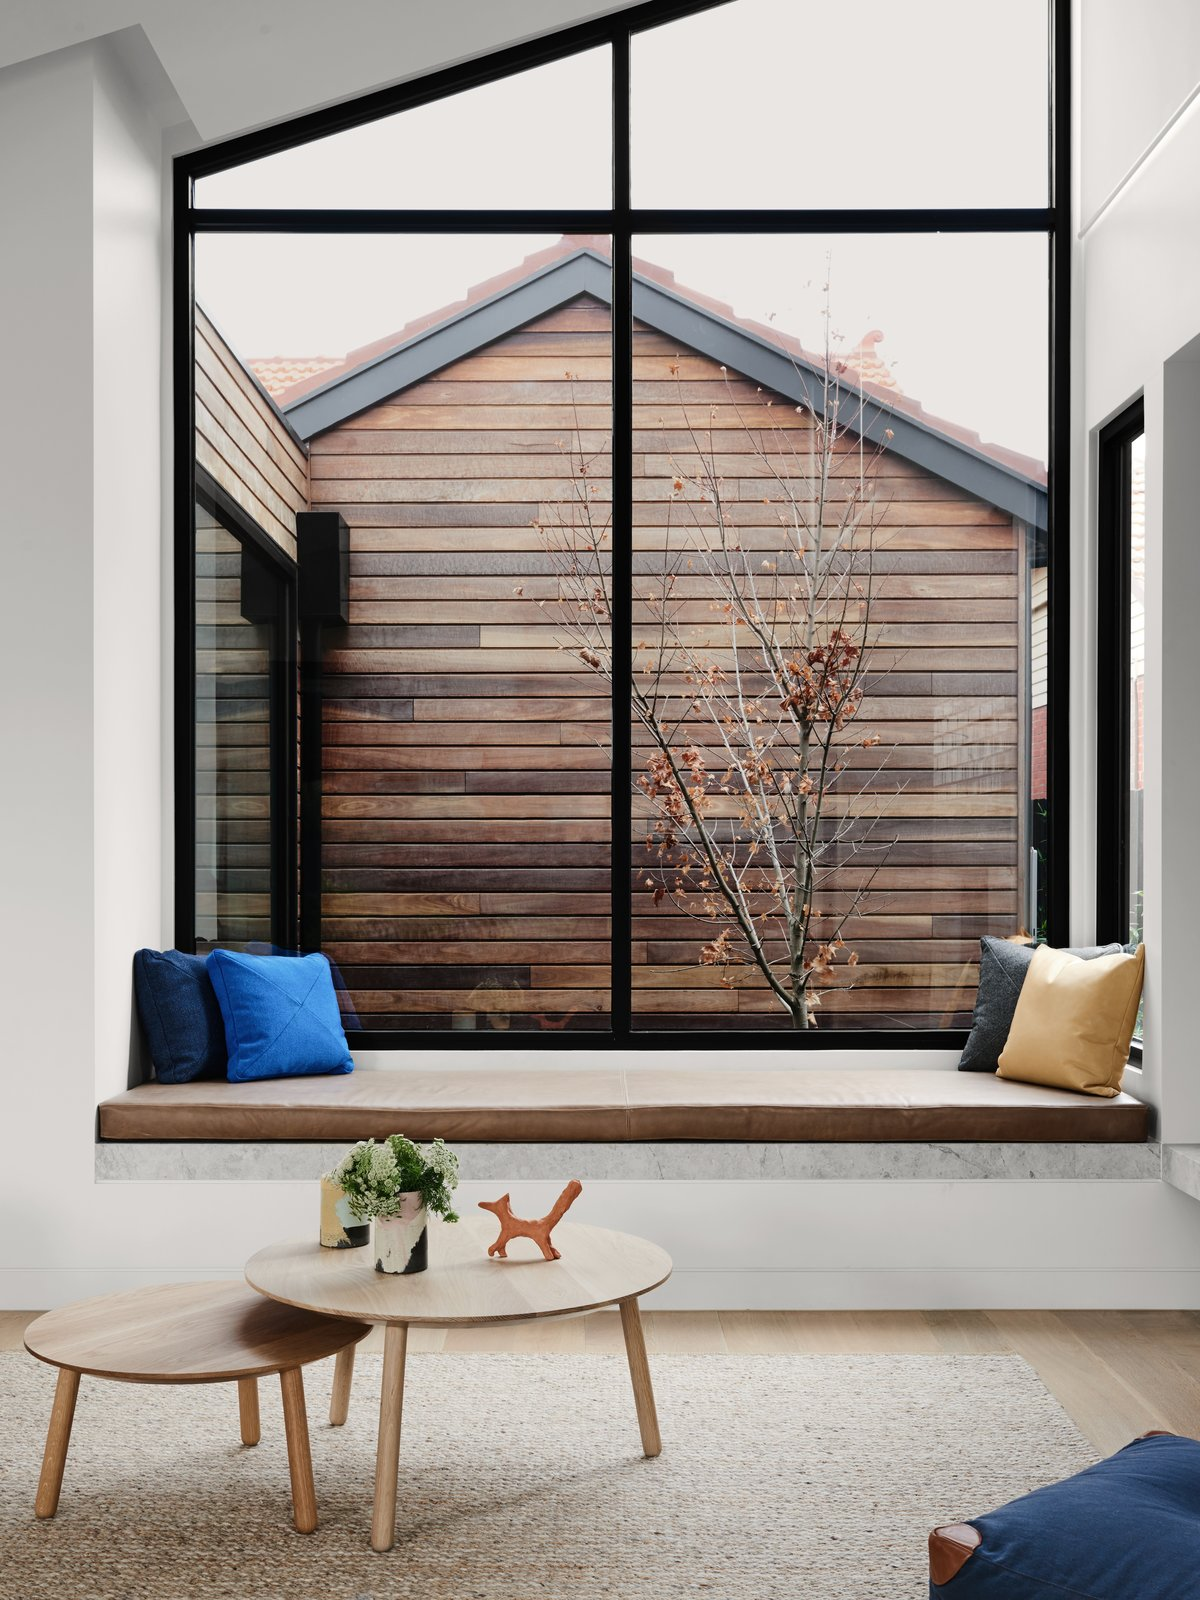 Windows, Casement Window Type, and Metal  Photo 2 of 10 in A Run-Down Melbourne Bungalow's Makeover Embraces Light and Family Life